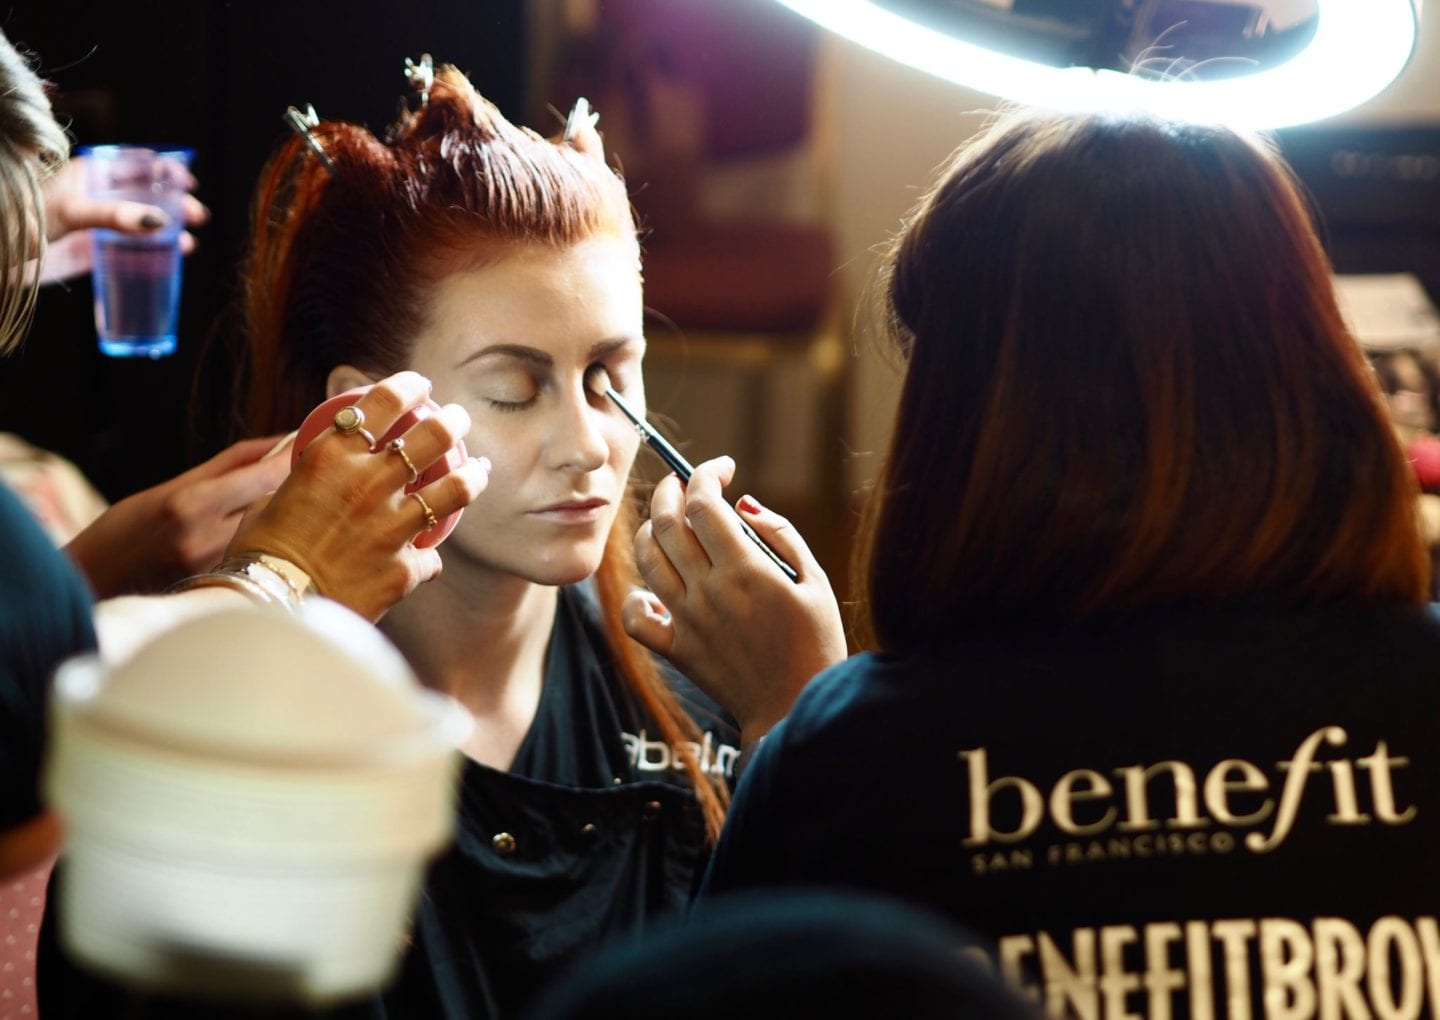 Backstage-at-LFW-With-Hellavagirl-X-Benefit-Cosmetics-benebabes-lisa